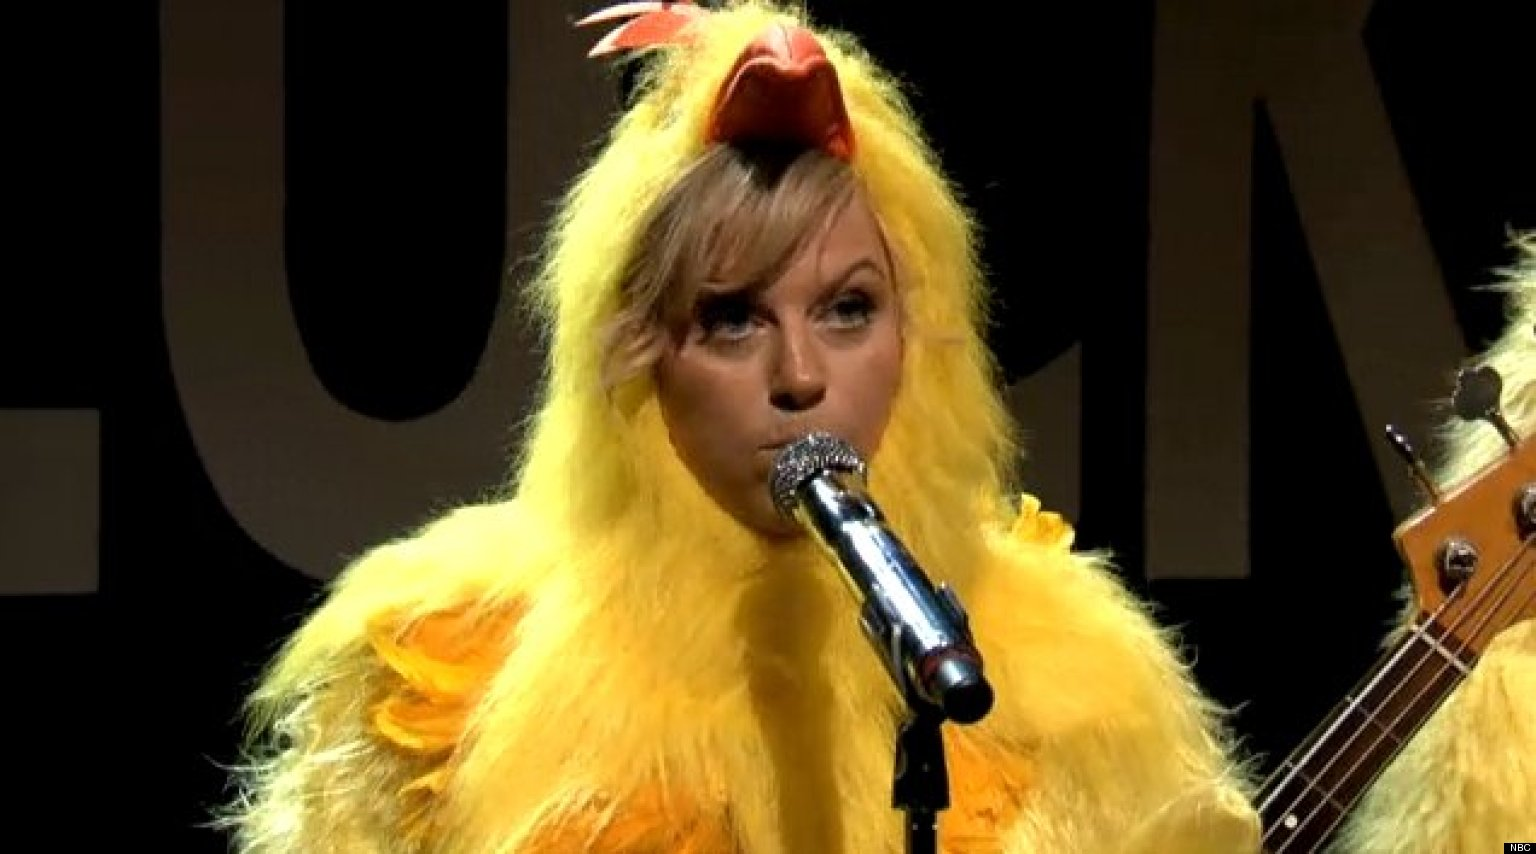 WATCH: Chicken Band Returns To 'Fallon' With Amy Poehler